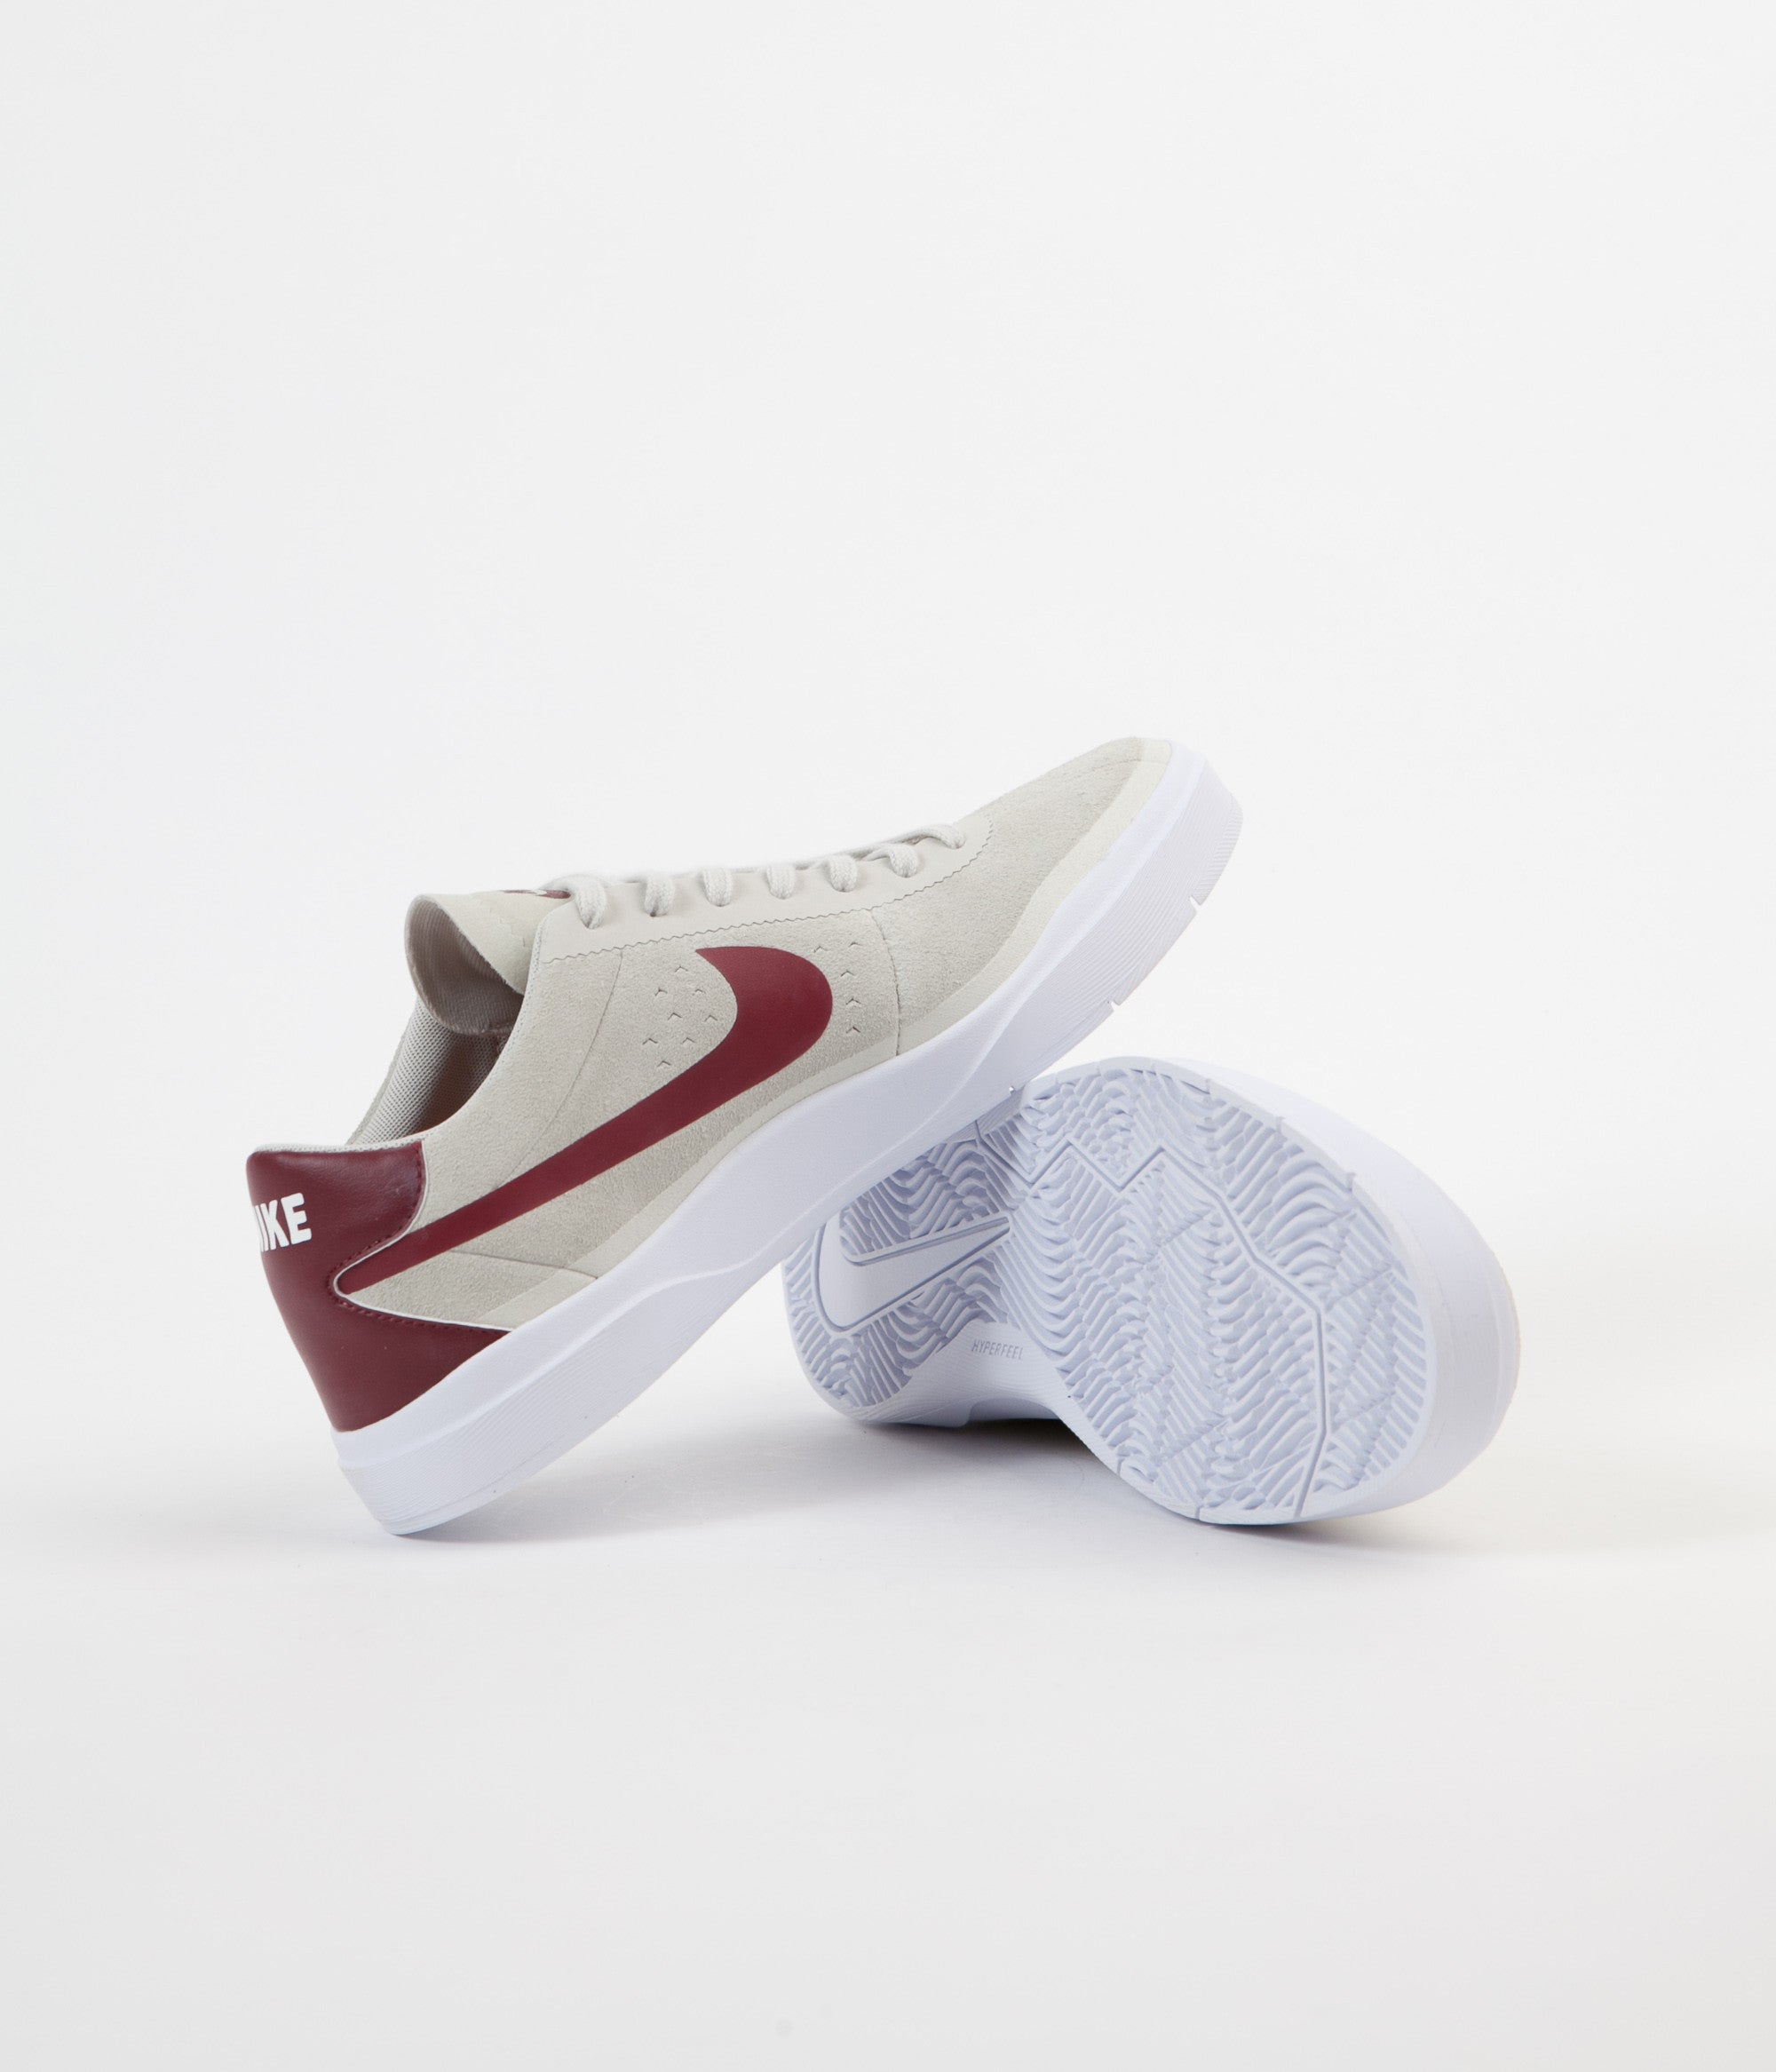 Nike SB Hyperfeel Bruin Shoes - Summit White / Team Red - White - White